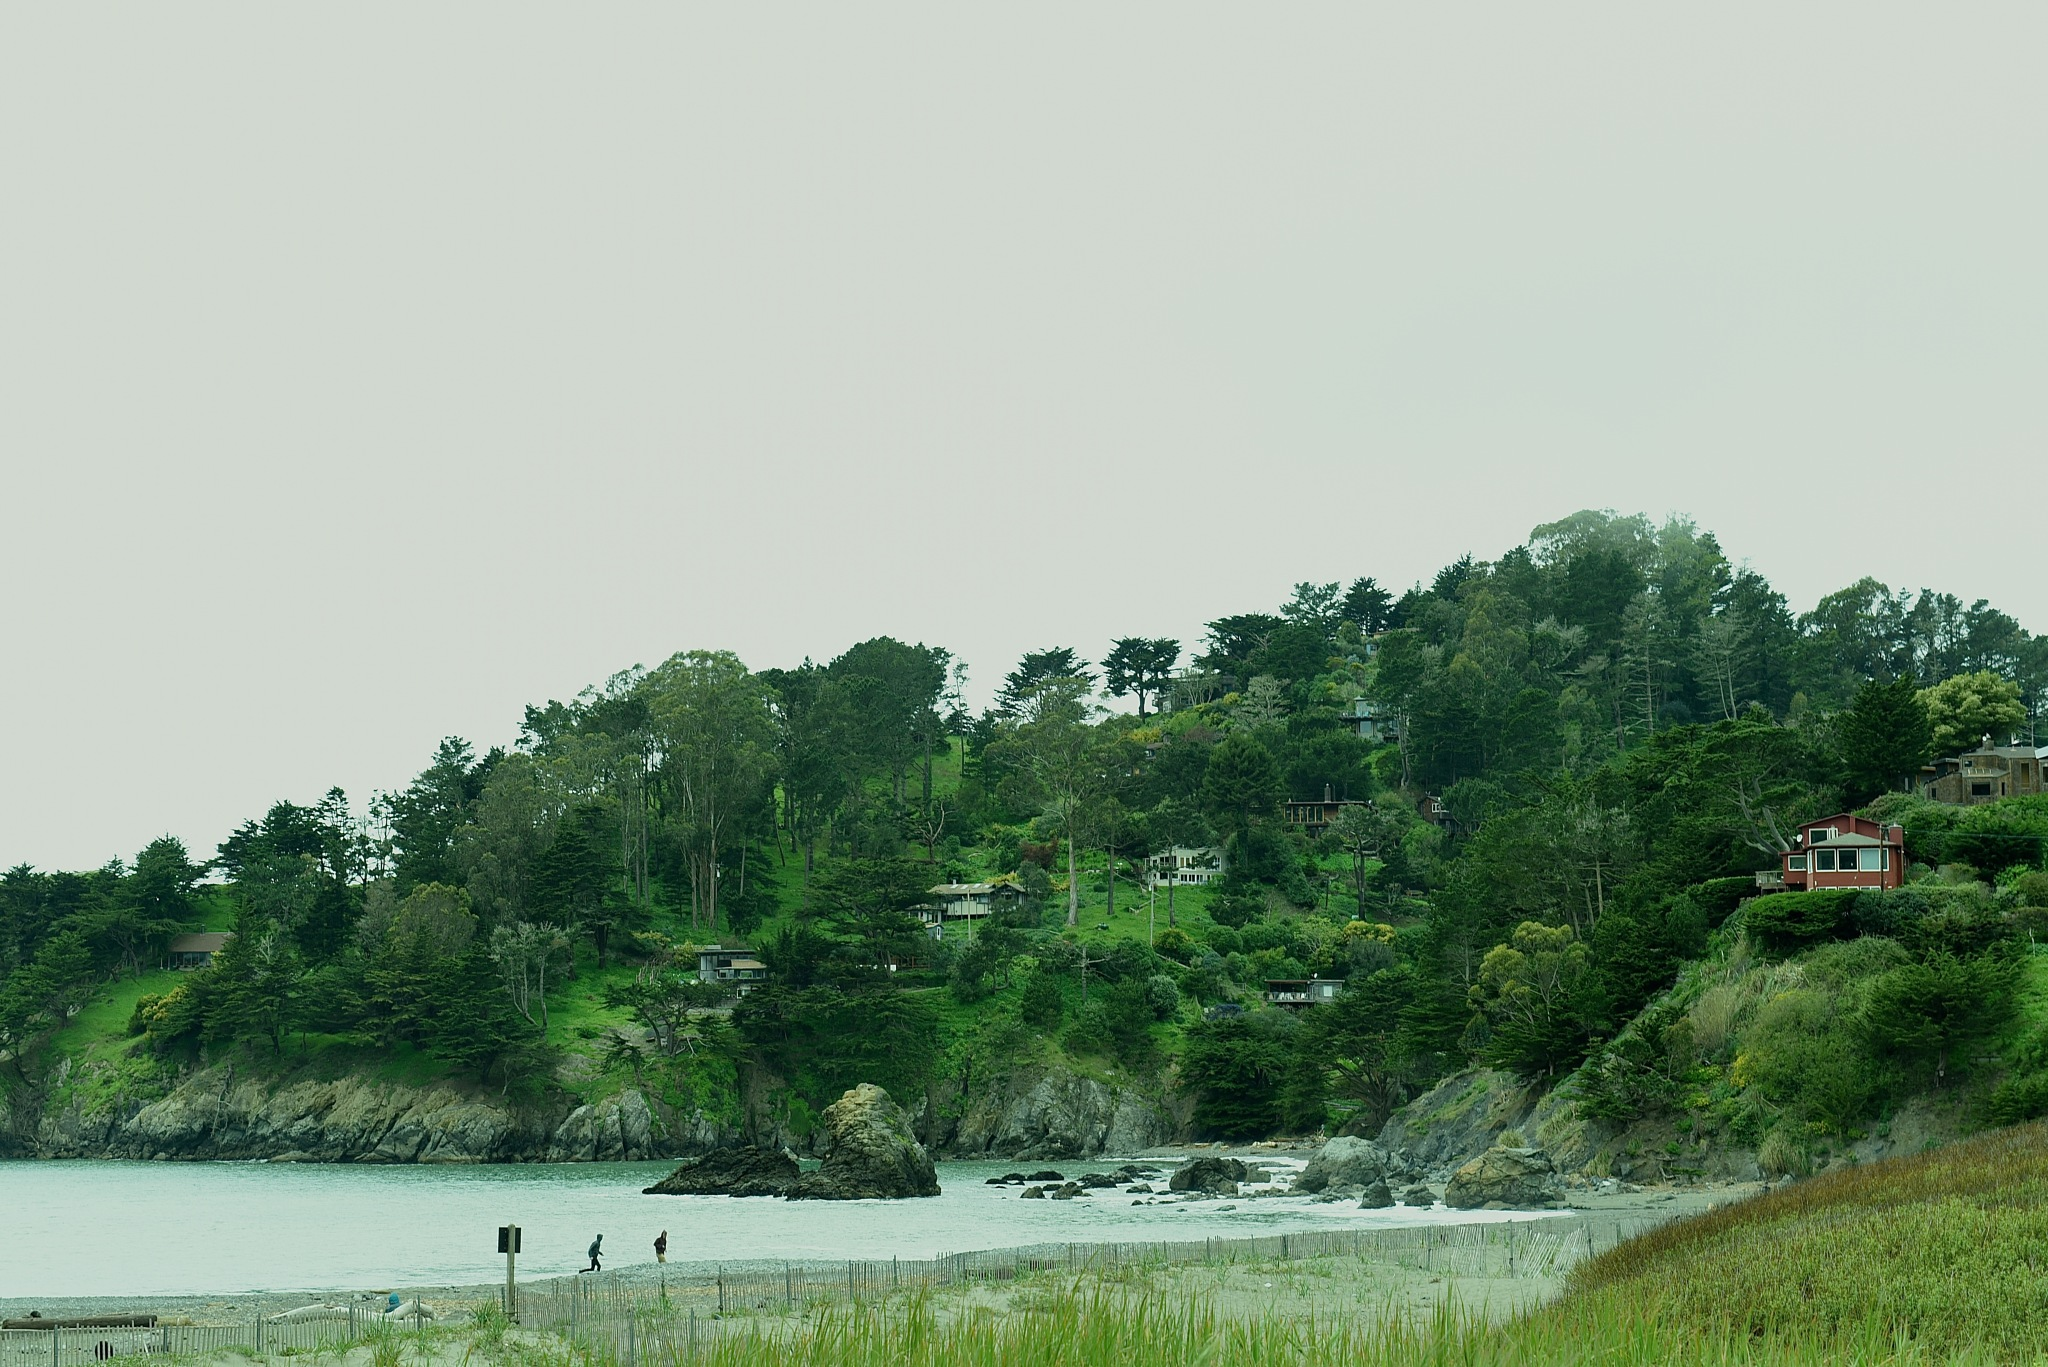 a small beach and houses nested among trees by Liliane Sticher